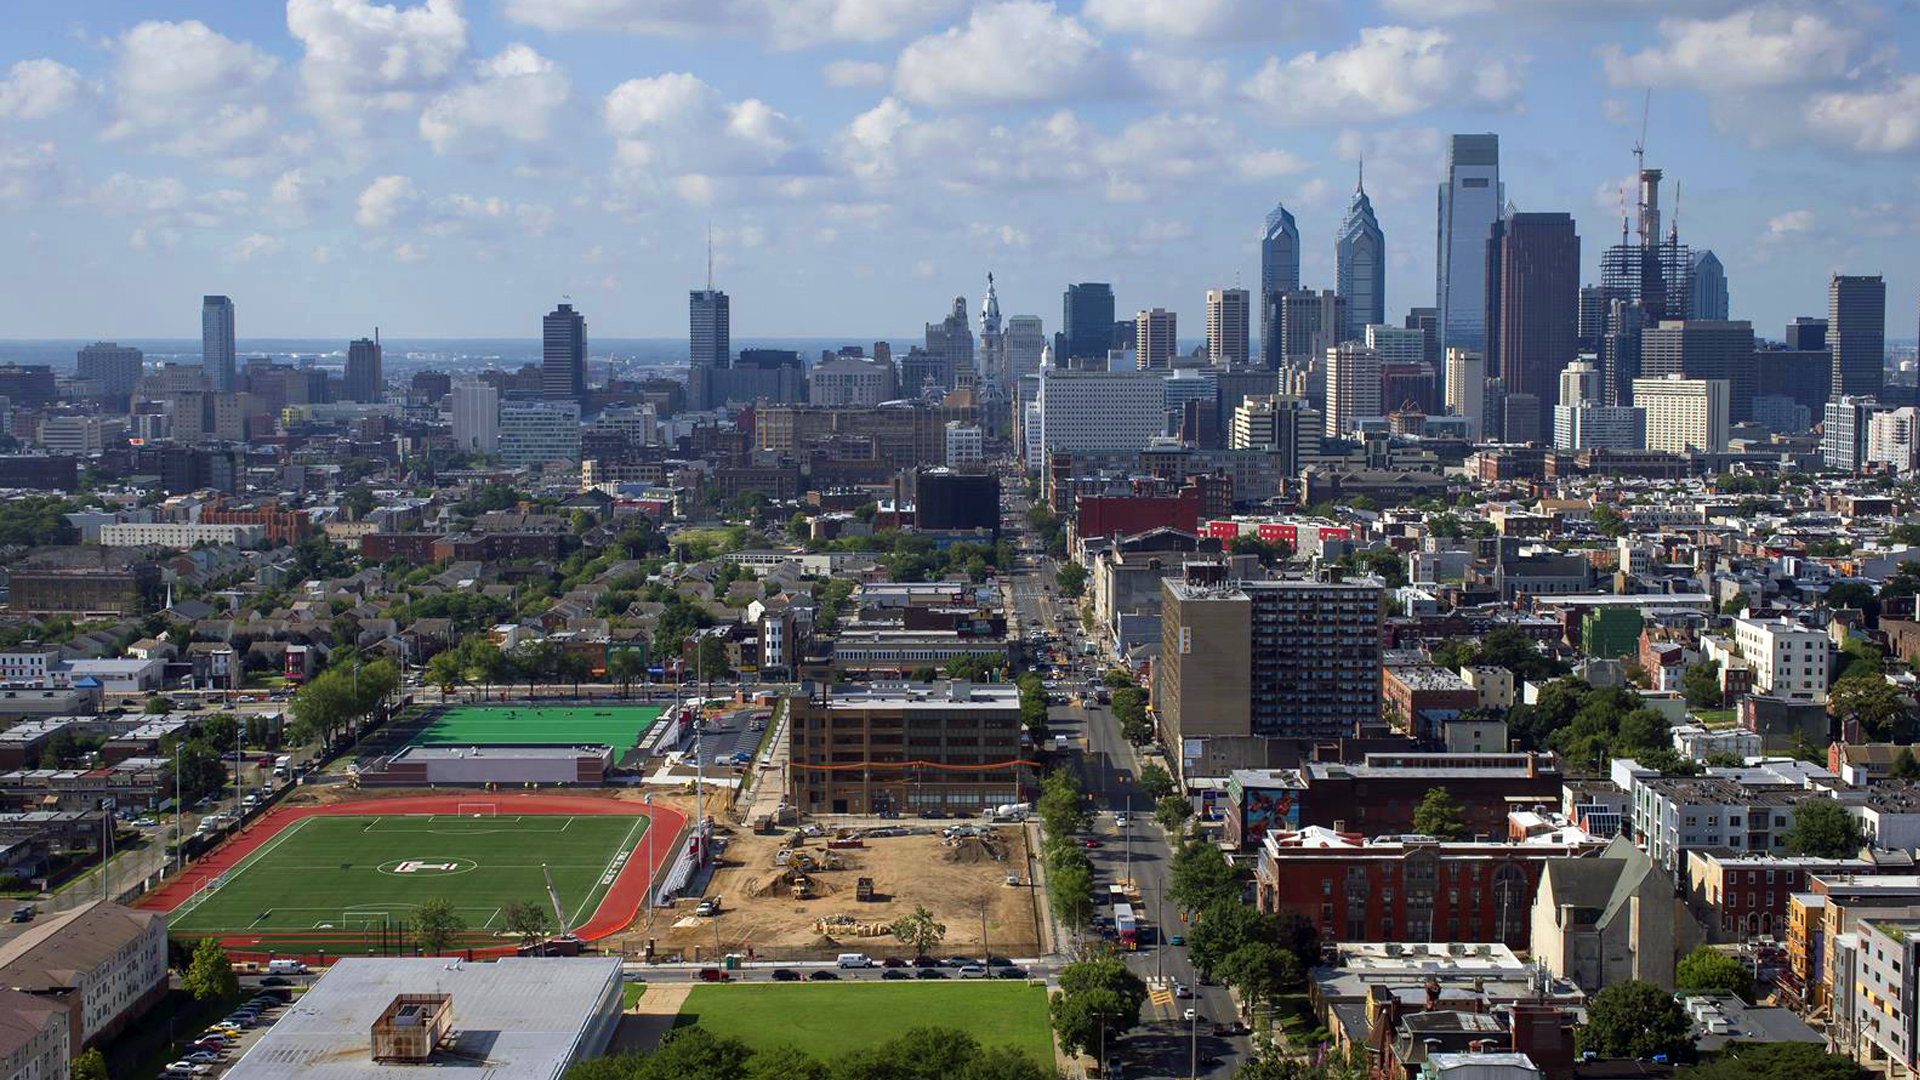 Temple Soccer: Home Is Where The City Skyline Is